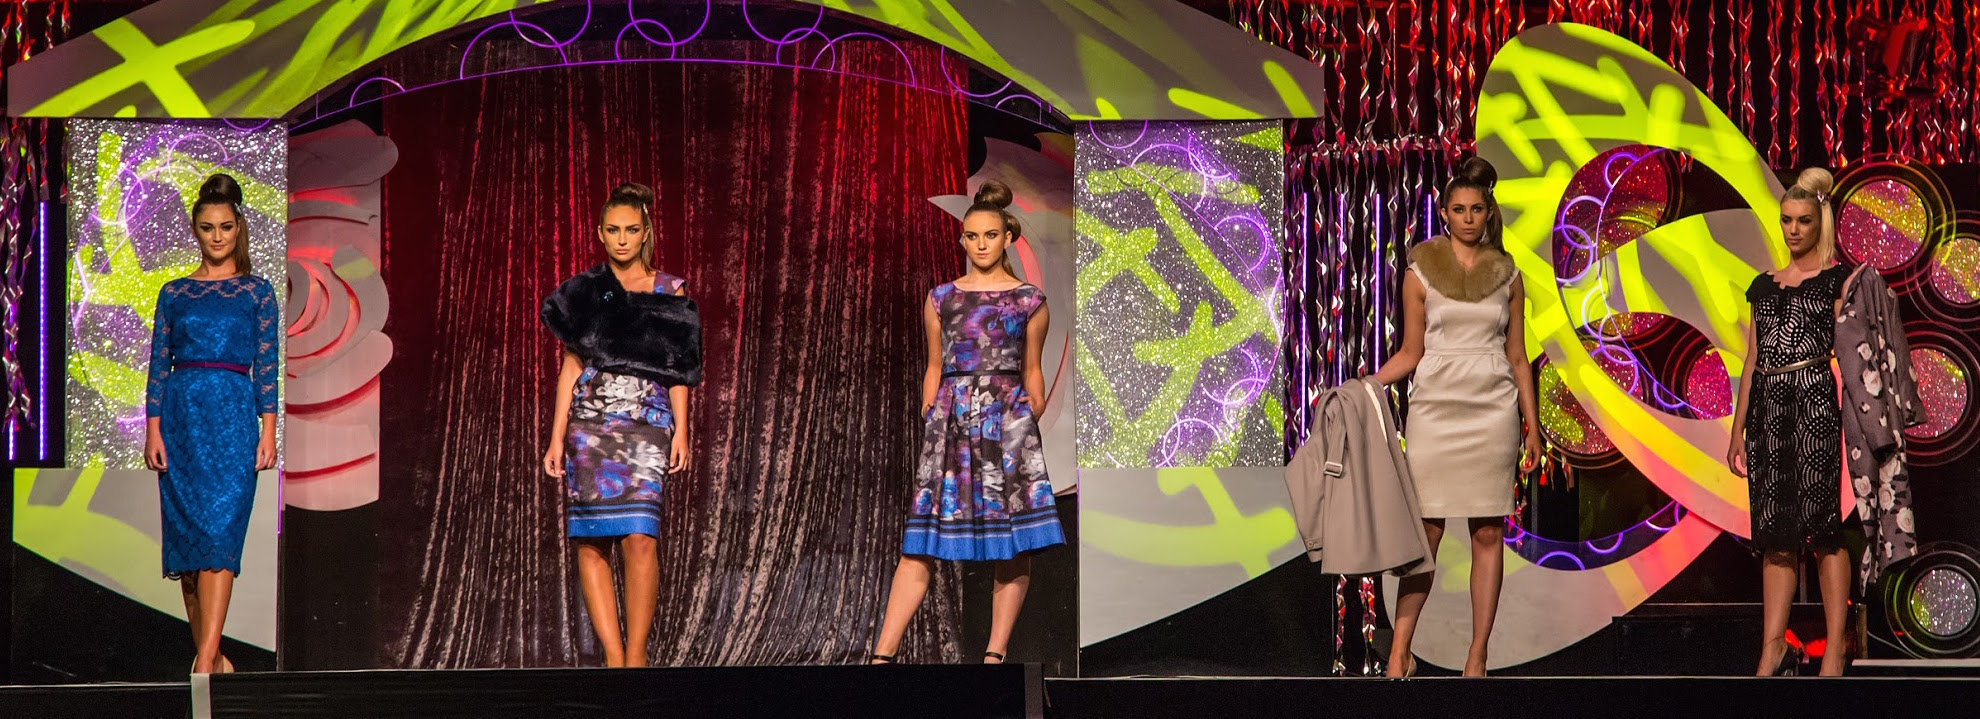 dolf_patijn_rose_of_tralee_fashion_16082015_0804-copy